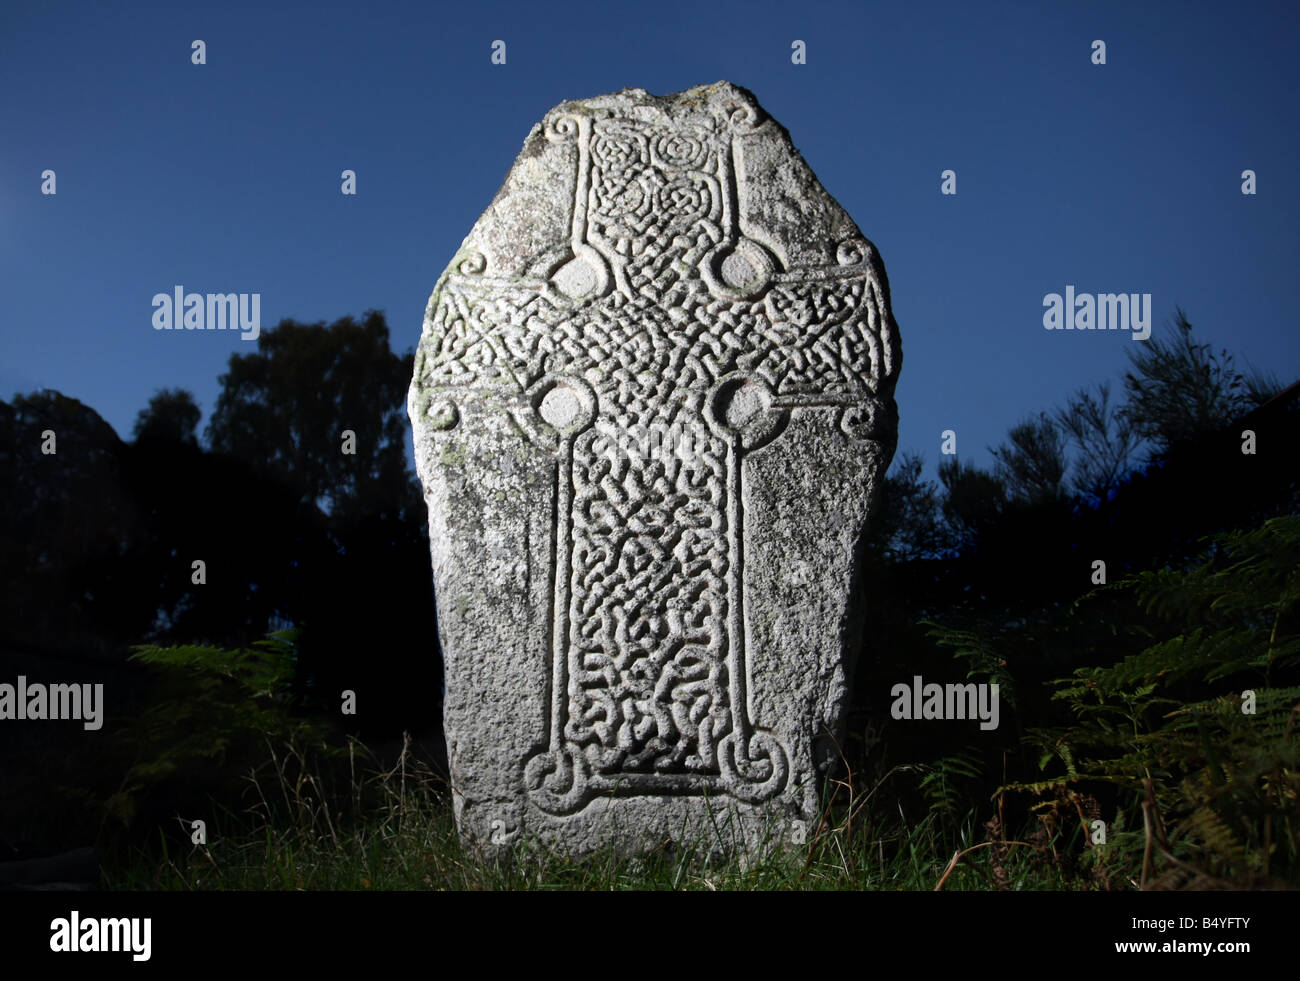 Ancient stone slab with carved Celtic Cross design, on the shores of Loch Kinord in Aberdeenshire, Scotland, UK - Stock Image